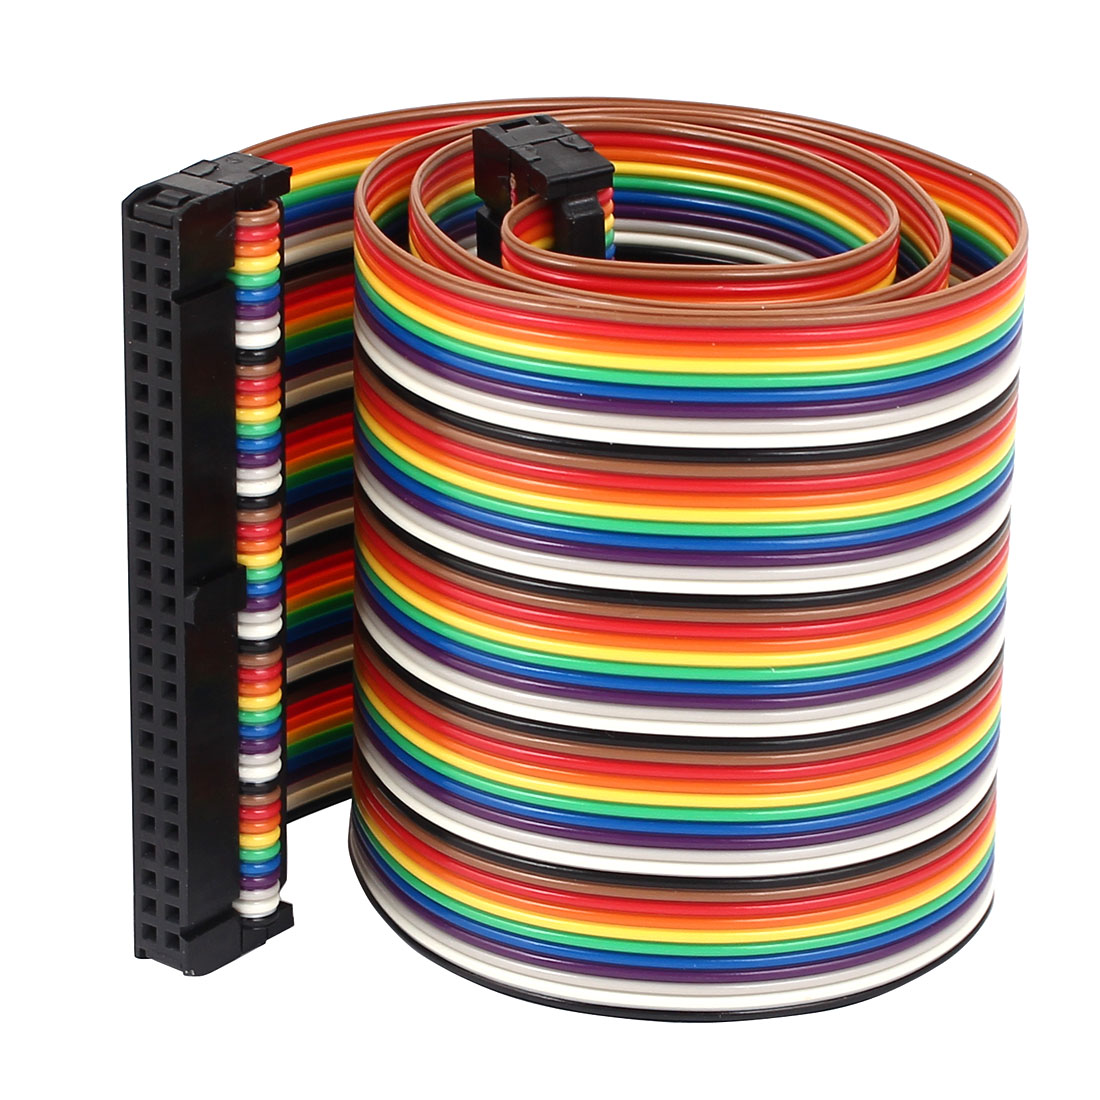 1.4ft 50 Pin 50 Way F/F Connector IDC Flat Rainbow Ribbon Cable